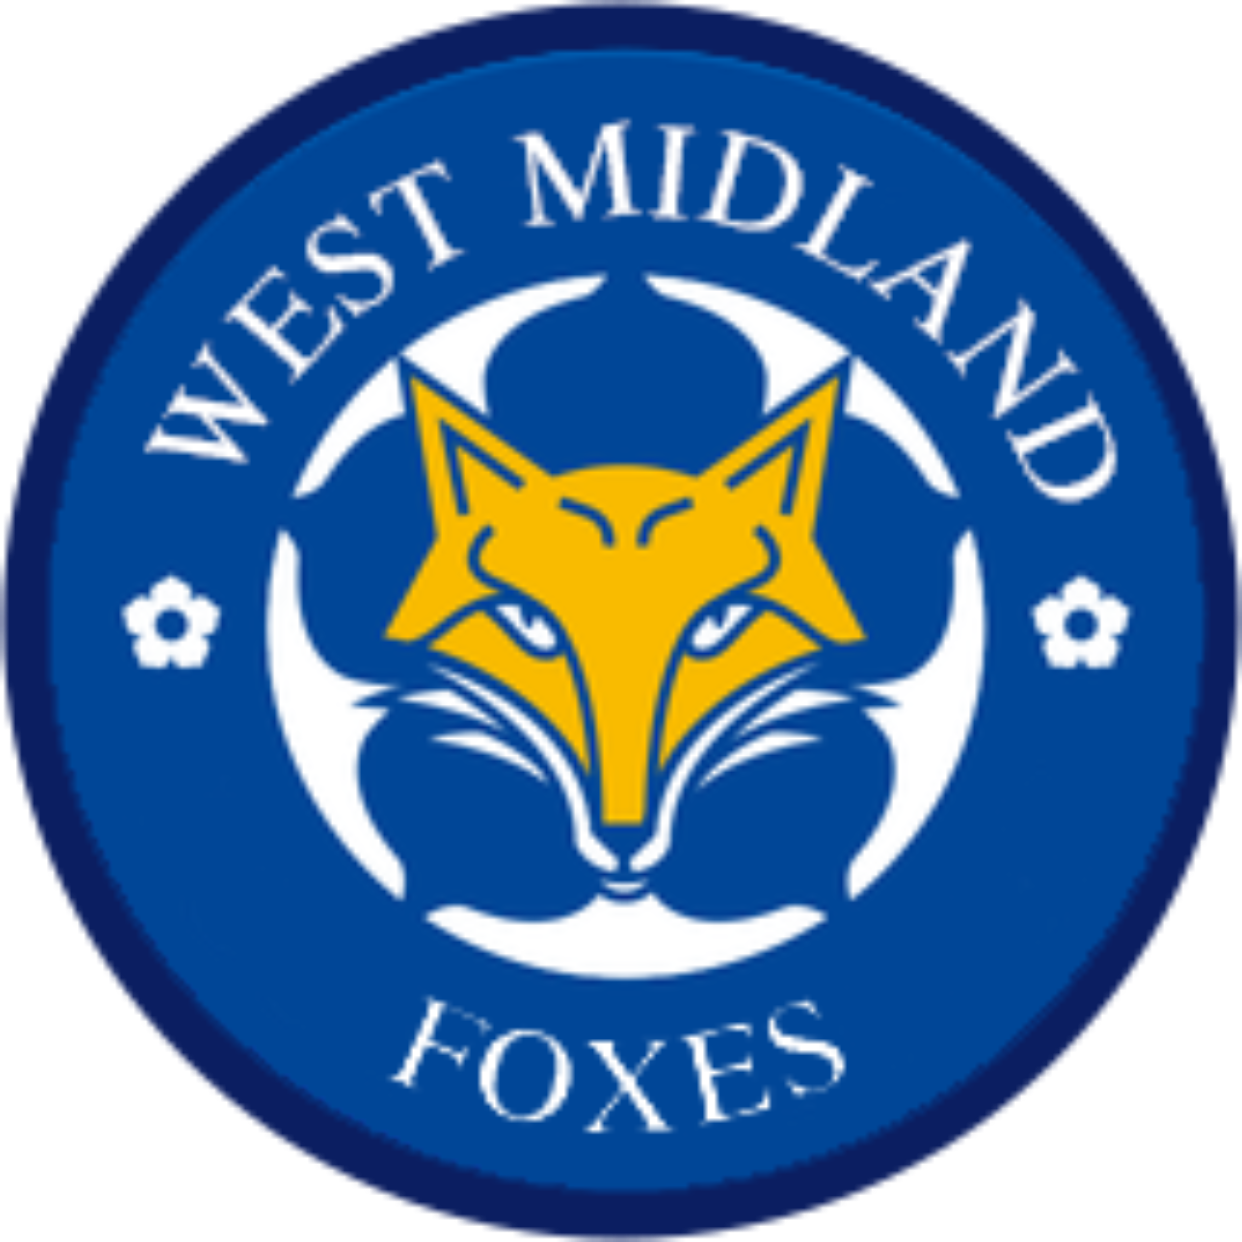 West Midland Foxes